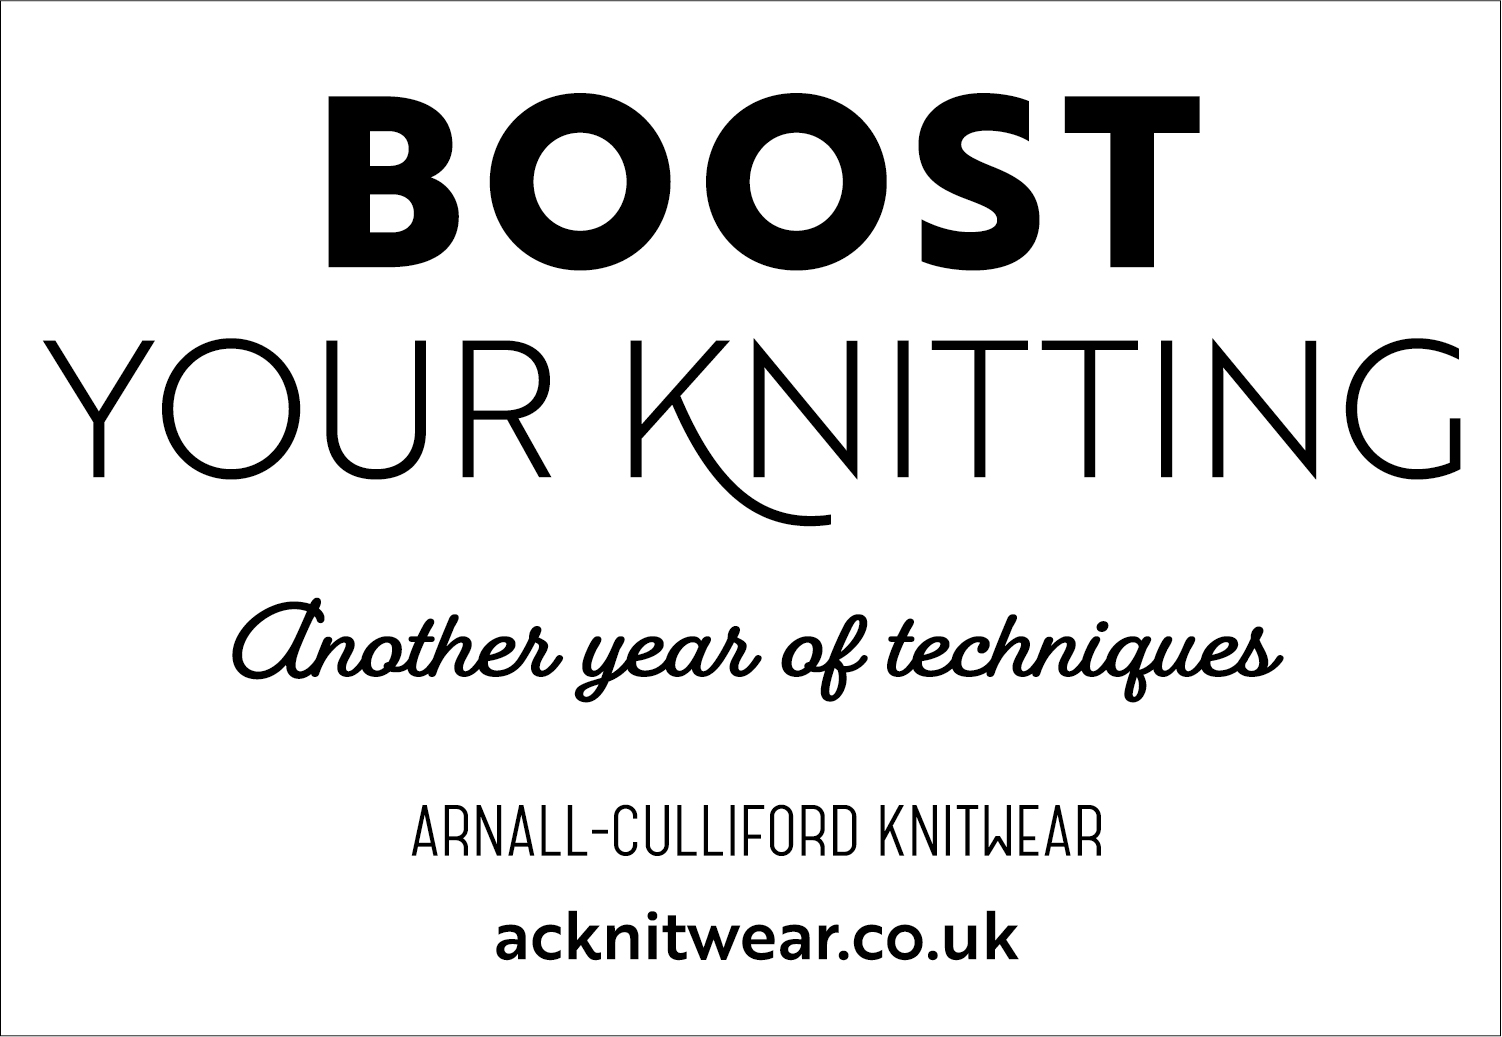 Boost Your Knitting_1500rec.jpg